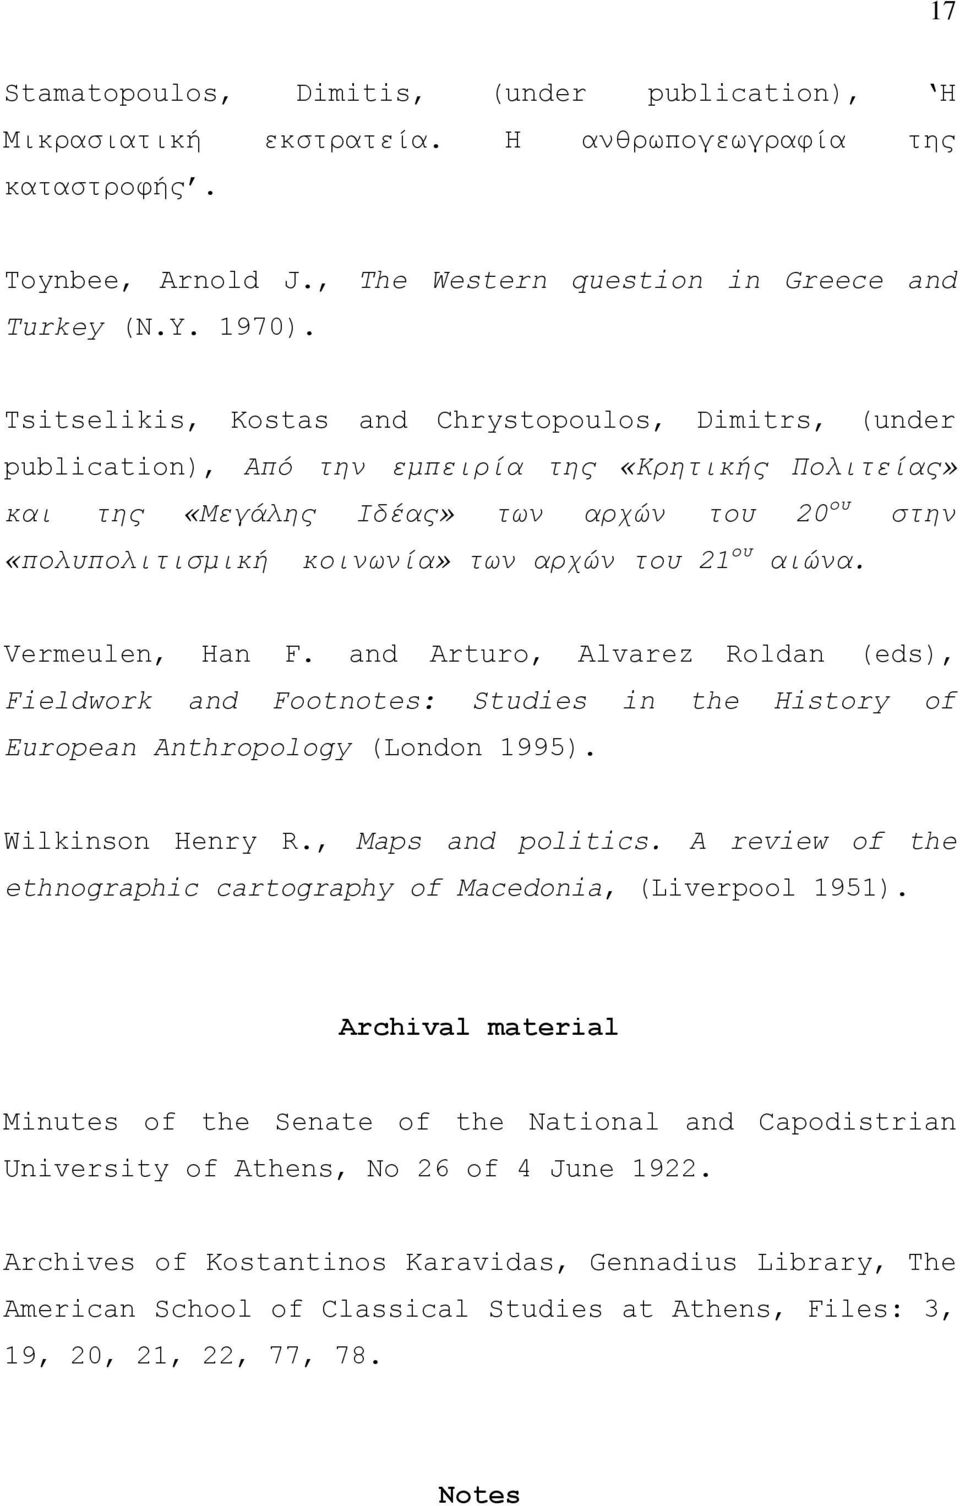 ηνπ 21 νπ αηώλα. Vermeulen, Han F. and Arturo, Alvarez Roldan (eds), Fieldwork and Footnotes: Studies in the History of European Anthropology (London 1995). Wilkinson Henry R., Maps and politics.